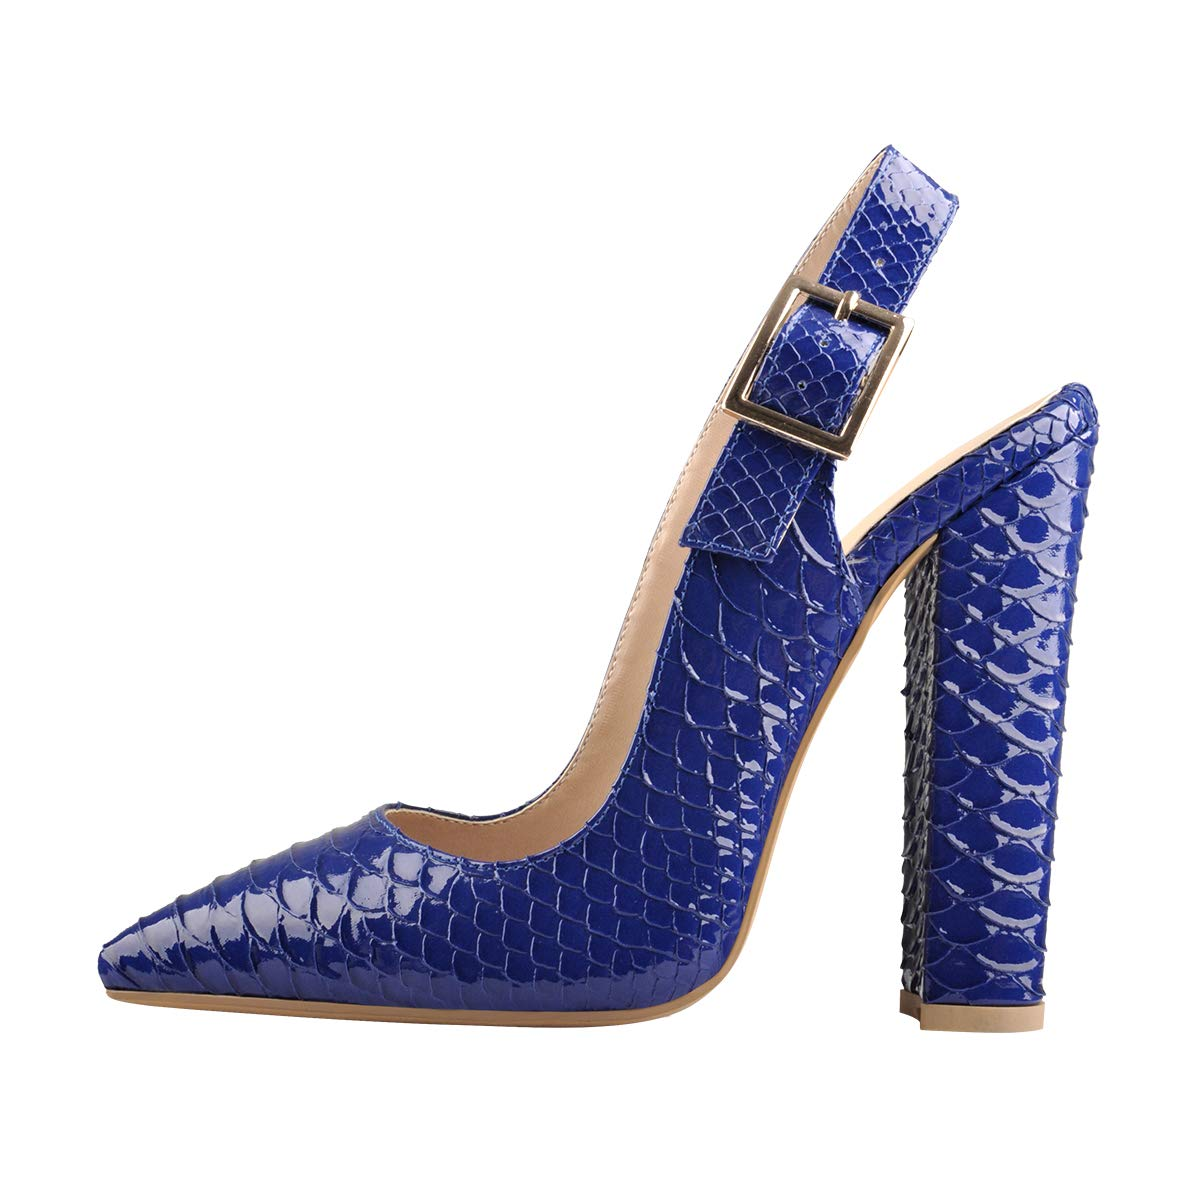 Onlymaker Women's Slingback Pointed Toe Fish Scale Pumps Ankle Strap Chunky Square Heel Dress Shoes for Party Prom Blue US 14 - wiihuu